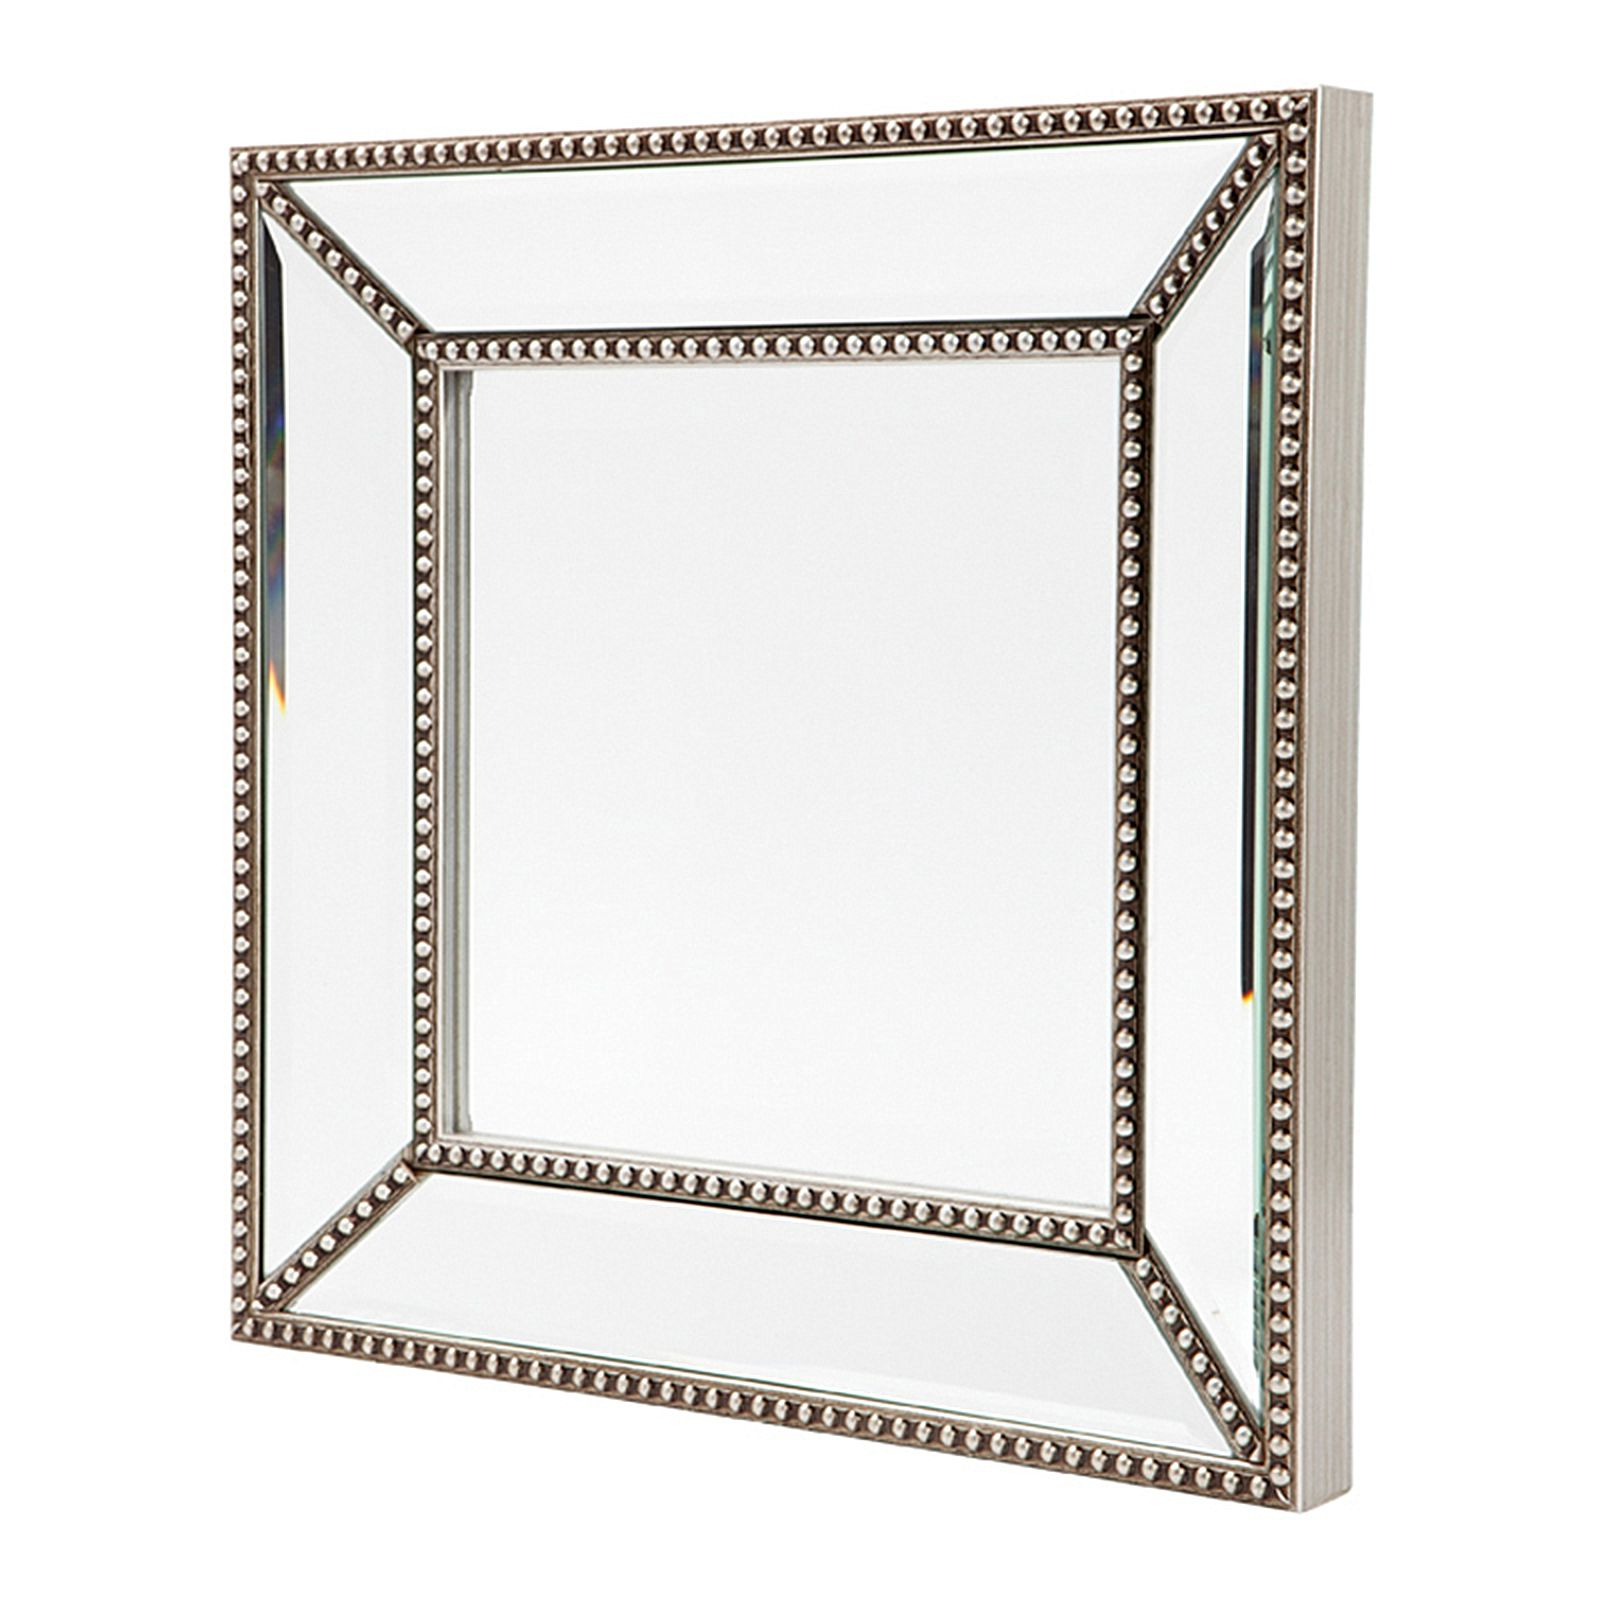 Zeta Wall Mirror, Antique Silver, Small Regarding 2020 Small Antique Wall Mirrors (View 13 of 20)